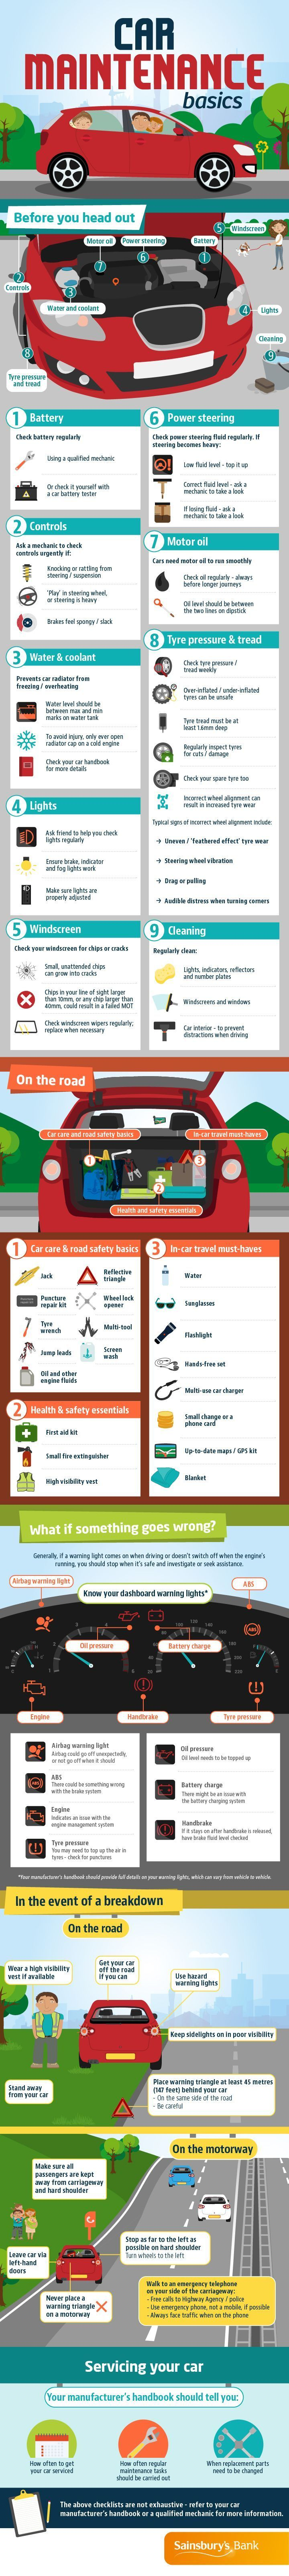 A Visual Guide to Car Maintenance #TeachingTuesday #Cars #Transportation